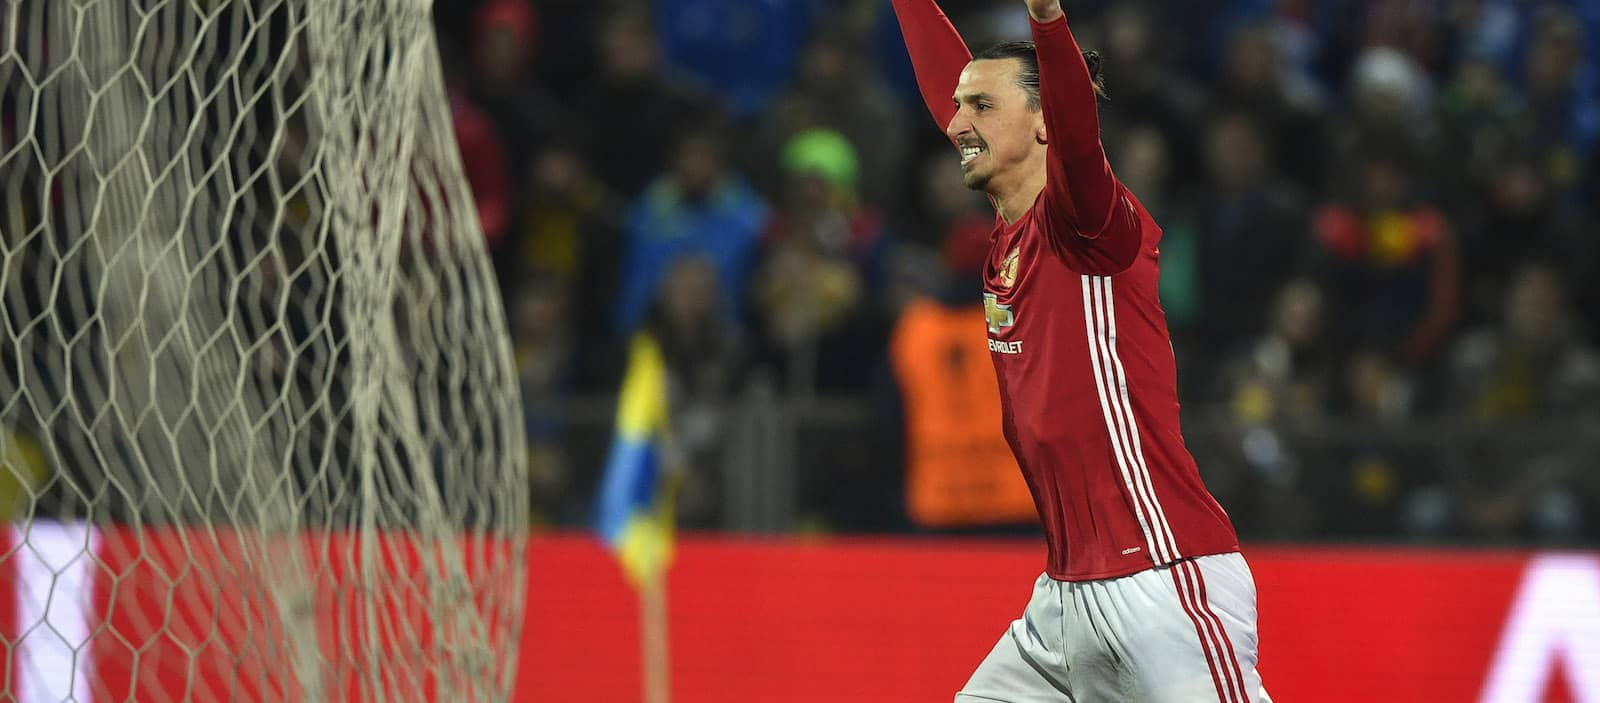 Zlatan Ibrahimovic: I'm happy at Manchester United